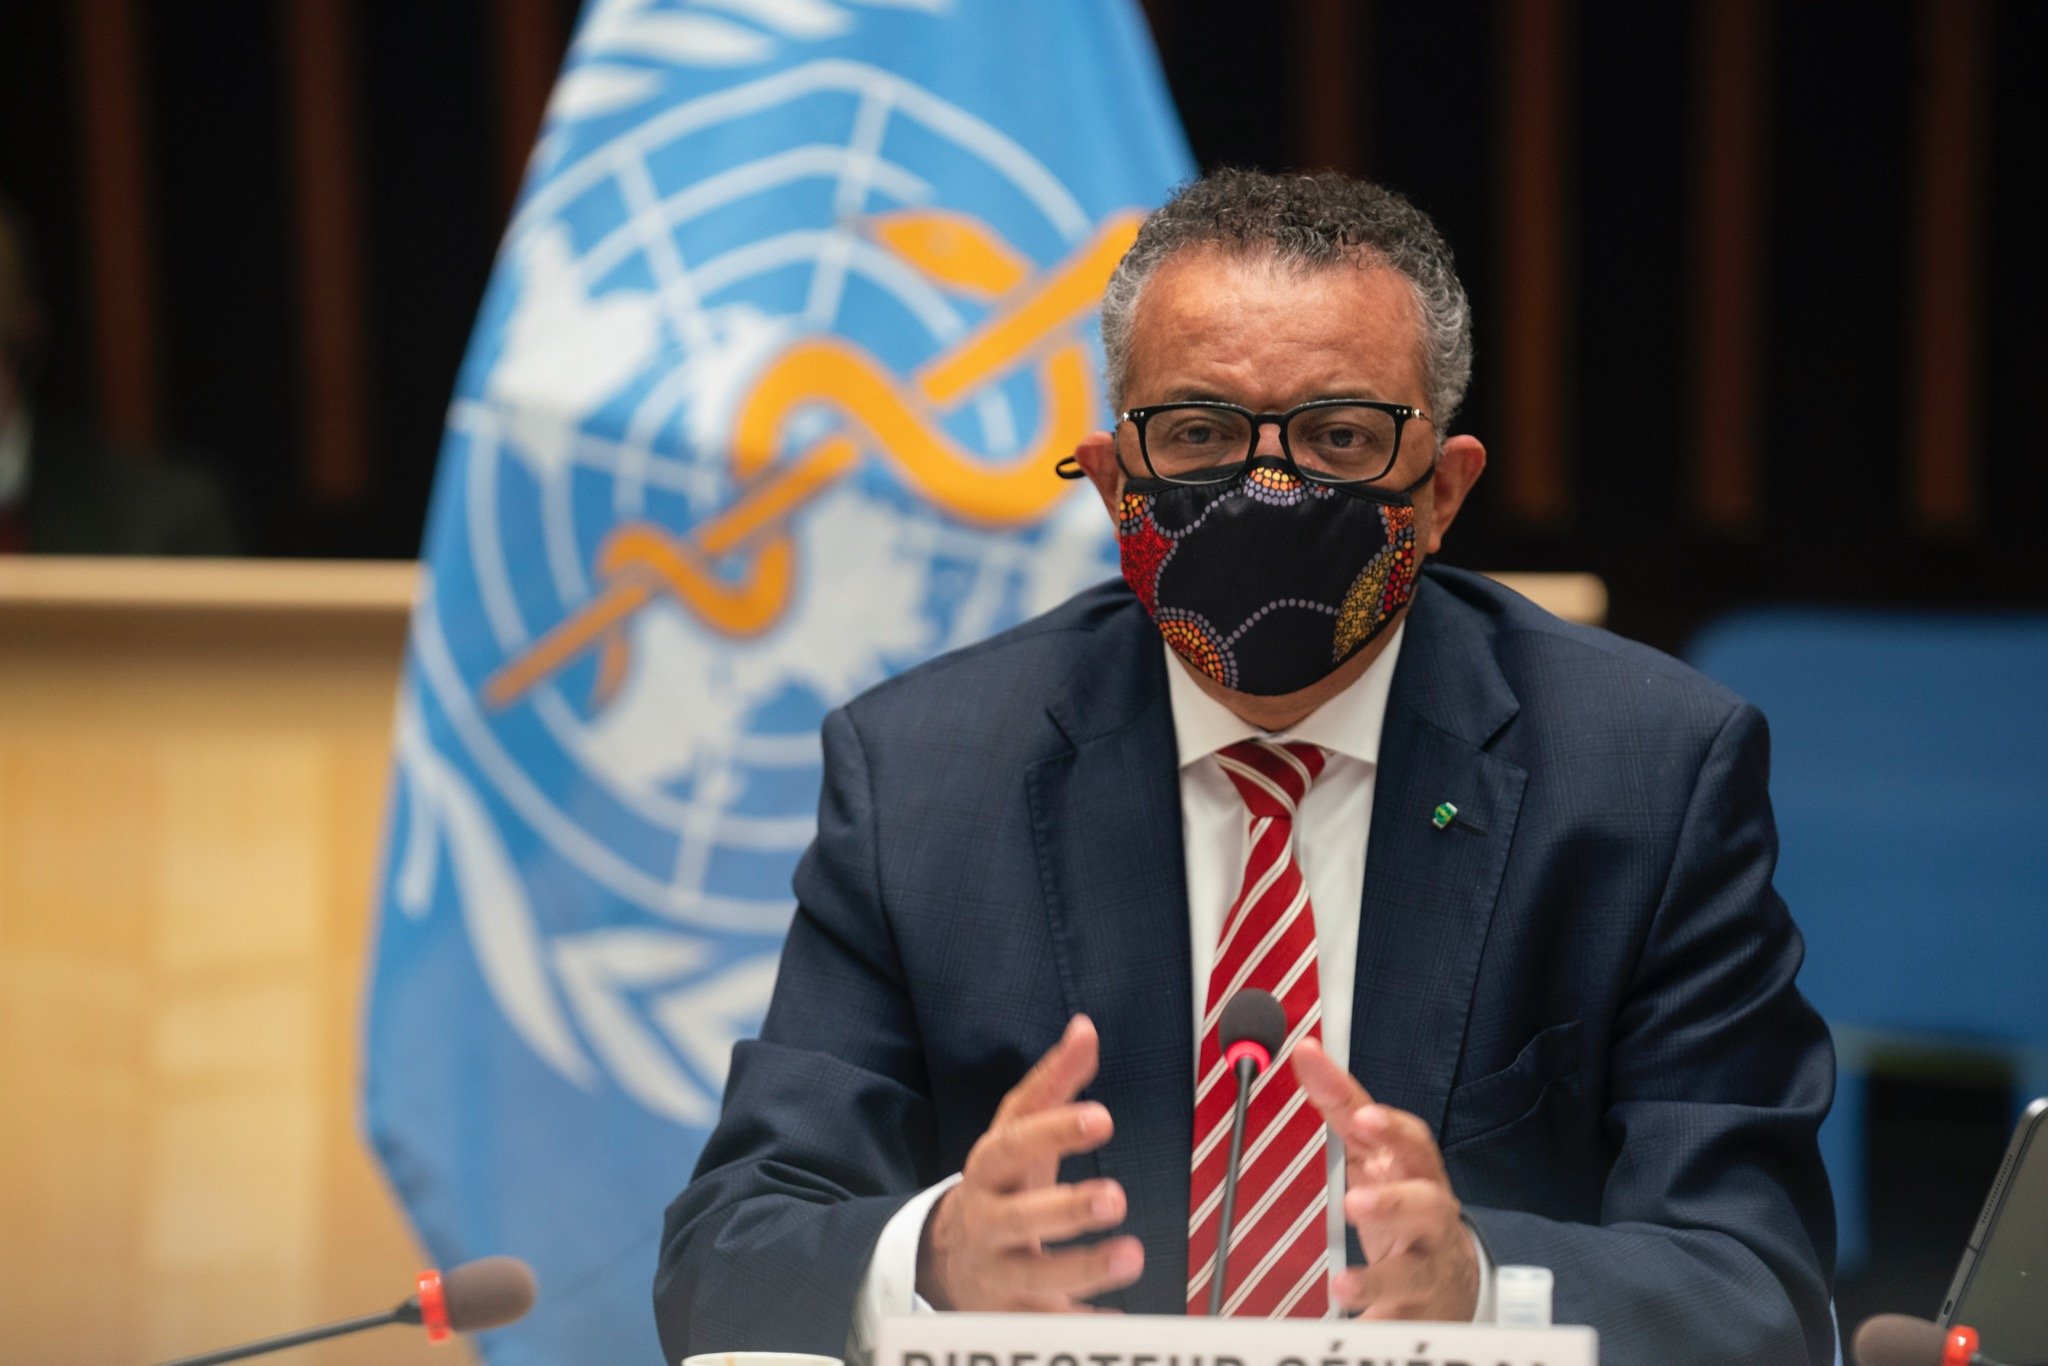 World Health Organization Director-General Tedros Adhanom Ghebreyesus. Photo courtesy: Twitter/@WHO